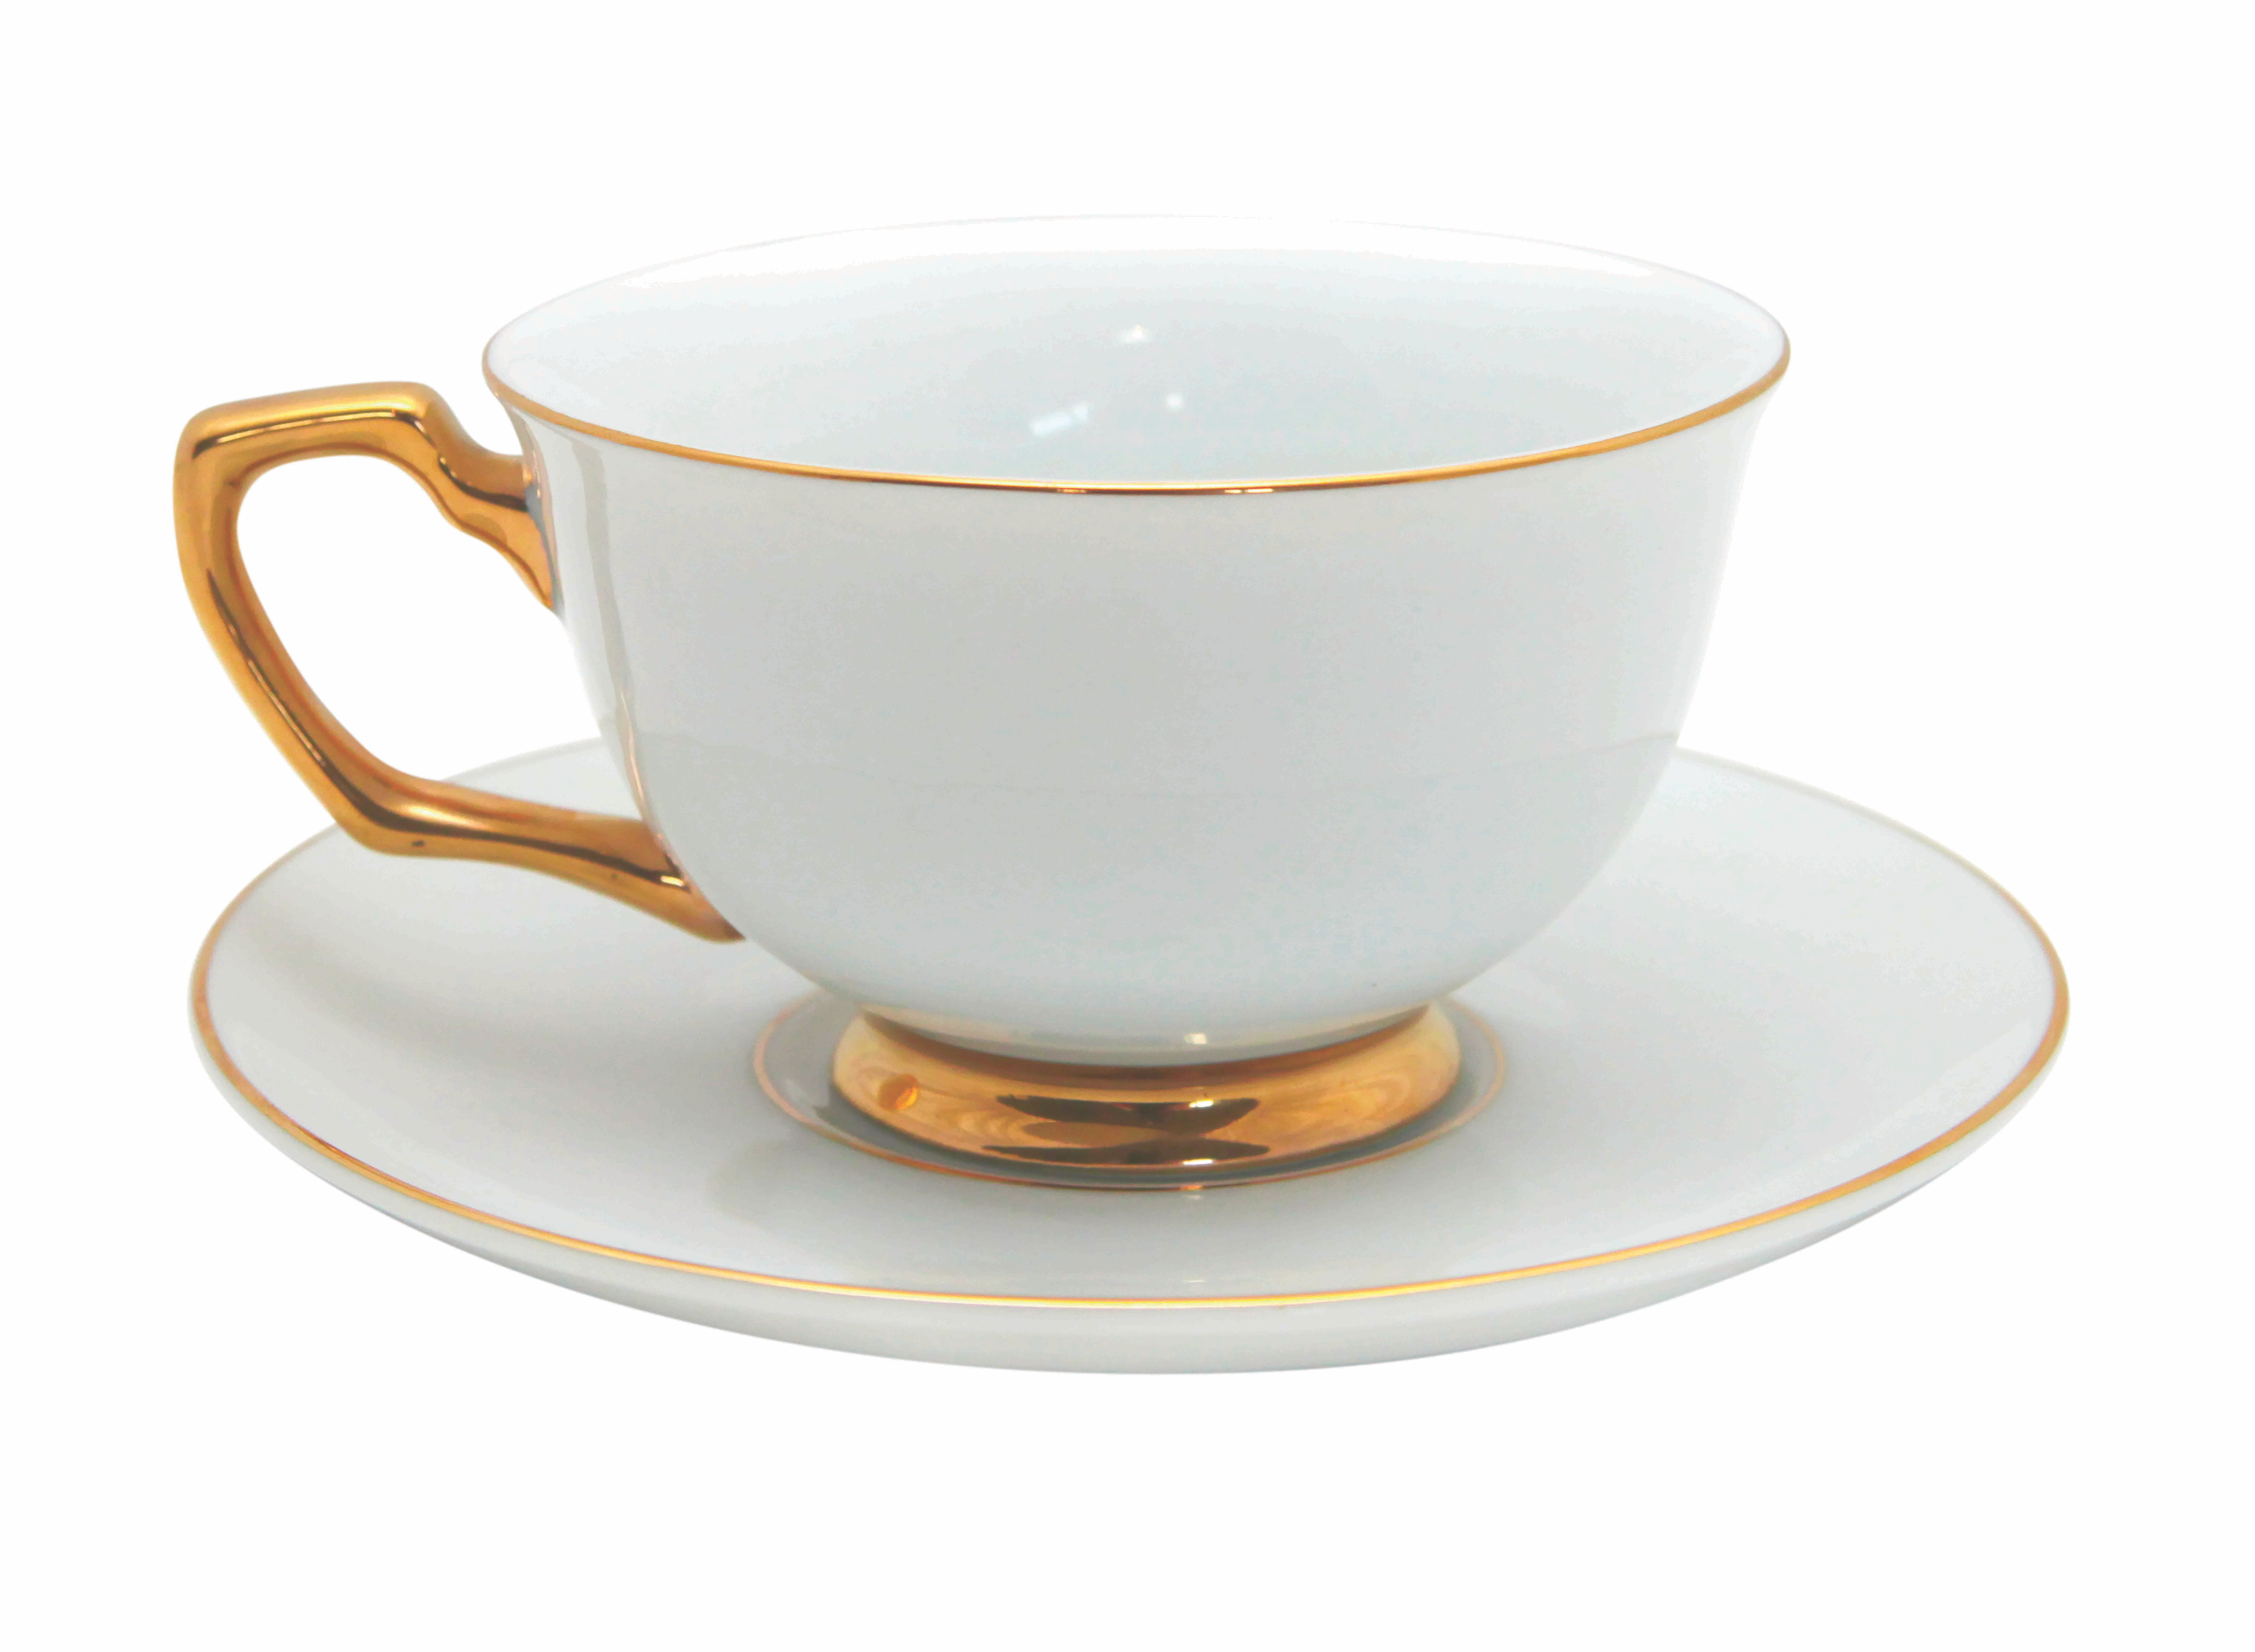 White Tea Cups To Decorate